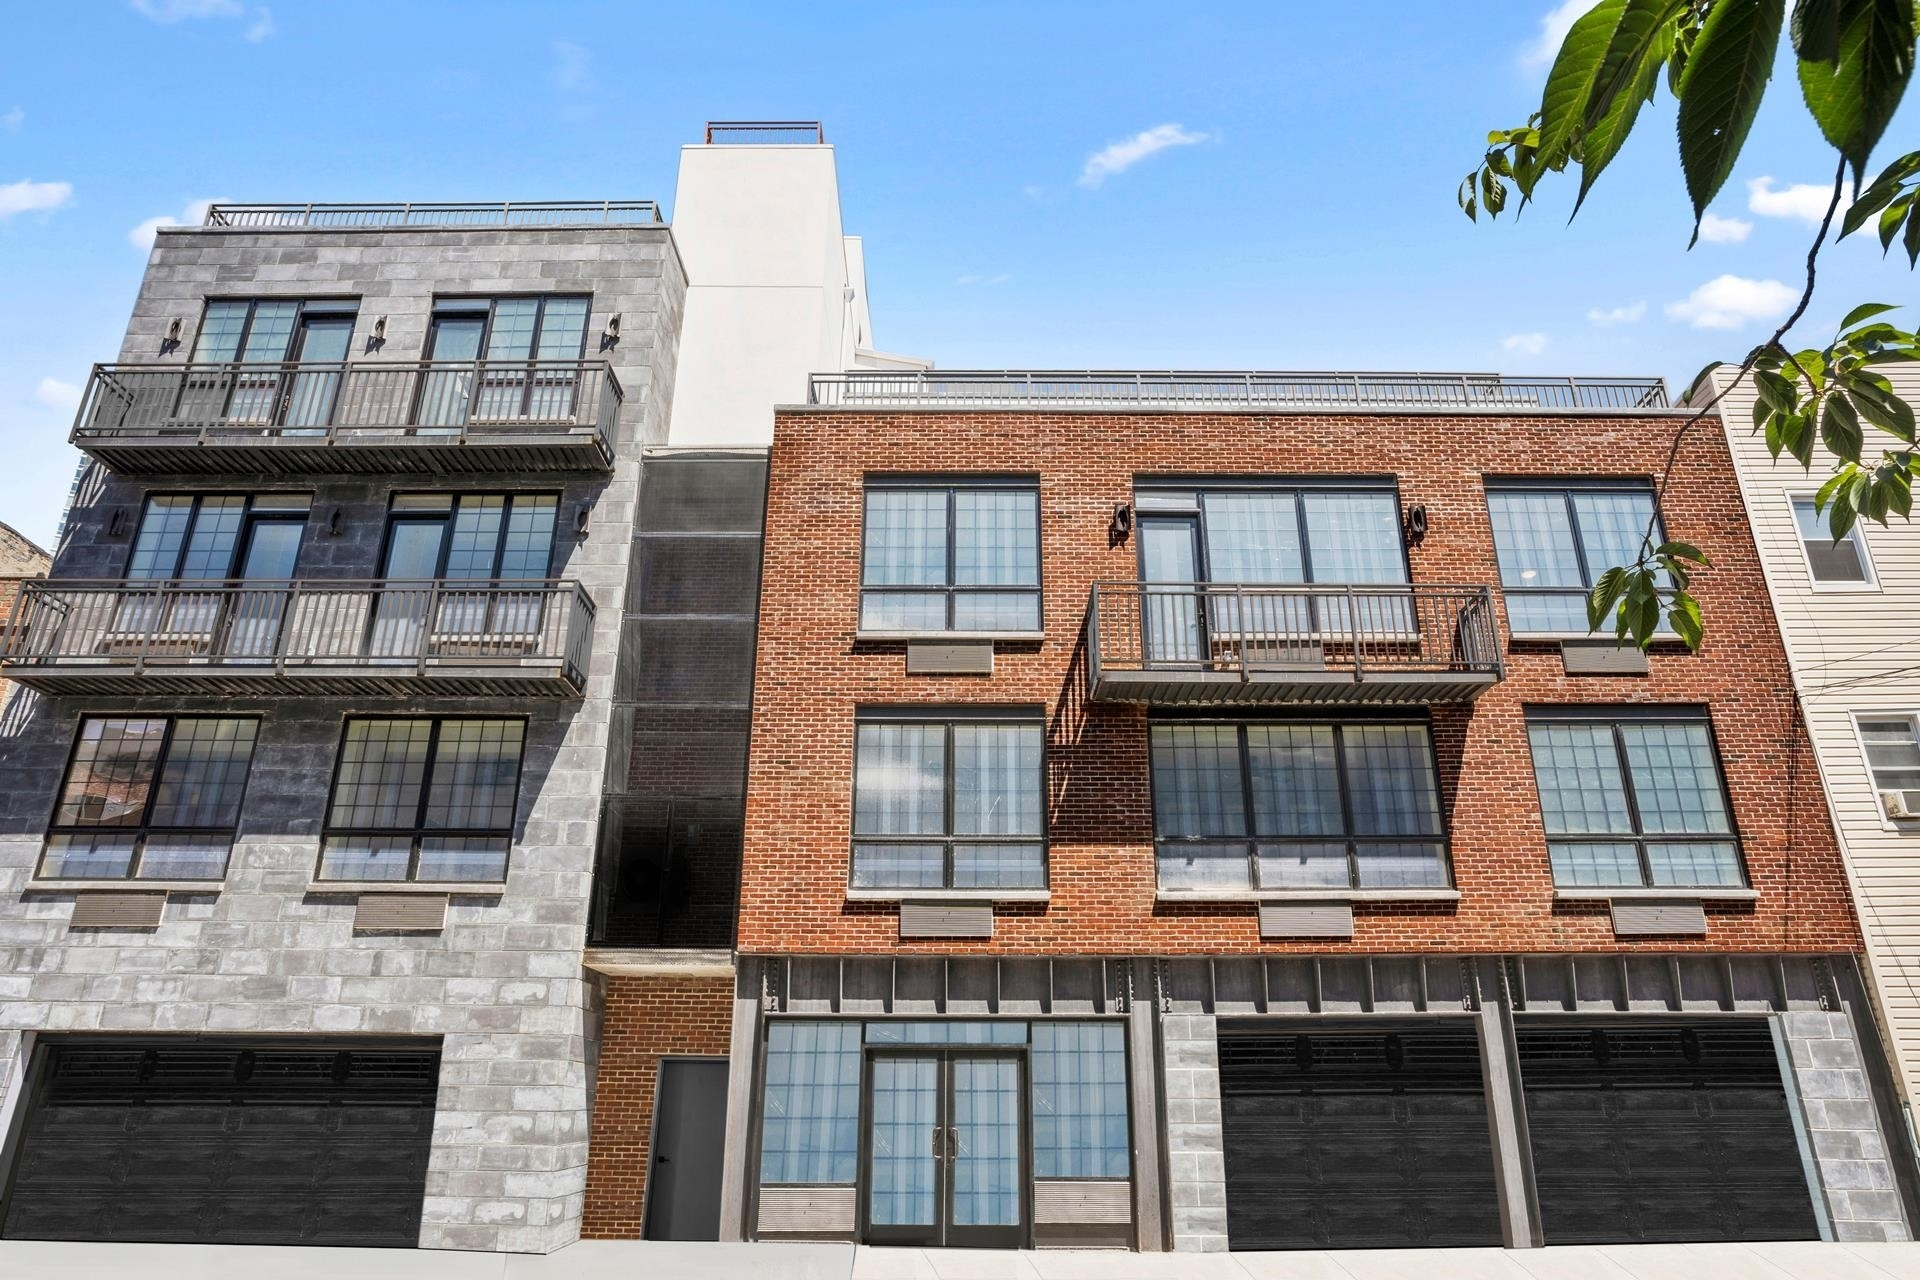 11. Condominiums for Sale at Greystone, 5-25 47TH RD , G1B Hunters Point, Queens, NY 11101